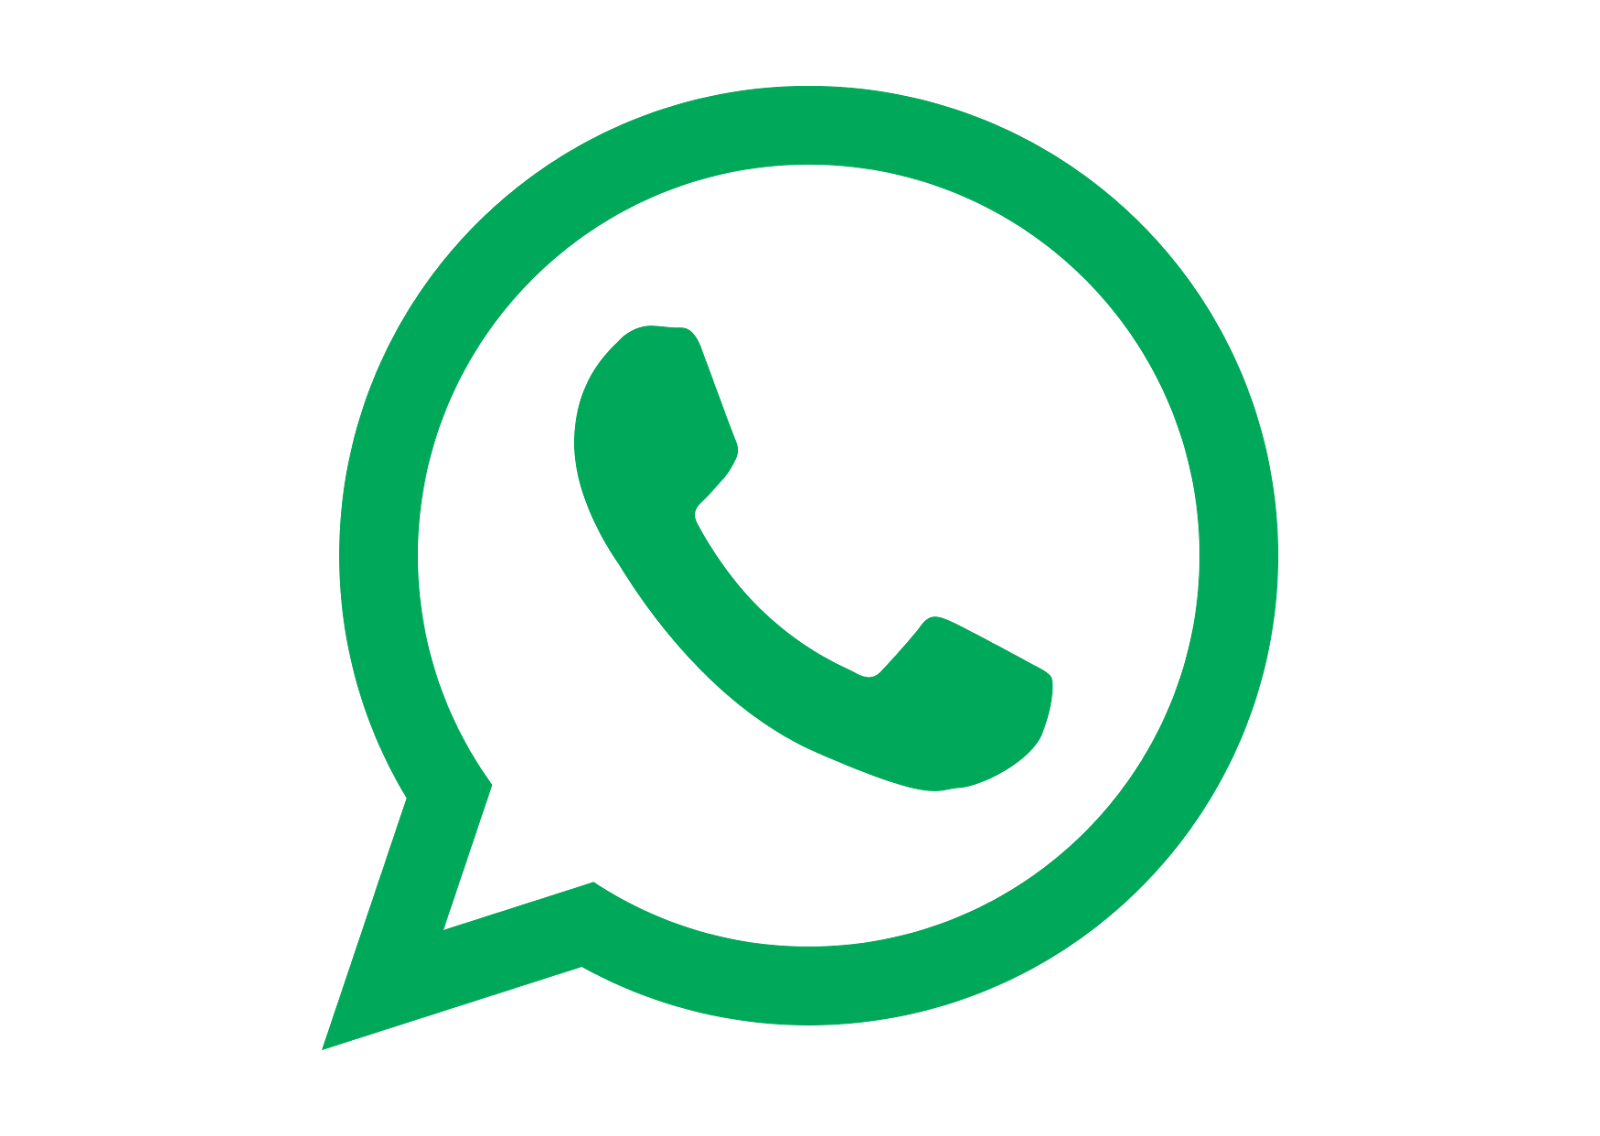 Whatsapp Logo Vector Logo do whatsapp, Whatsapp png